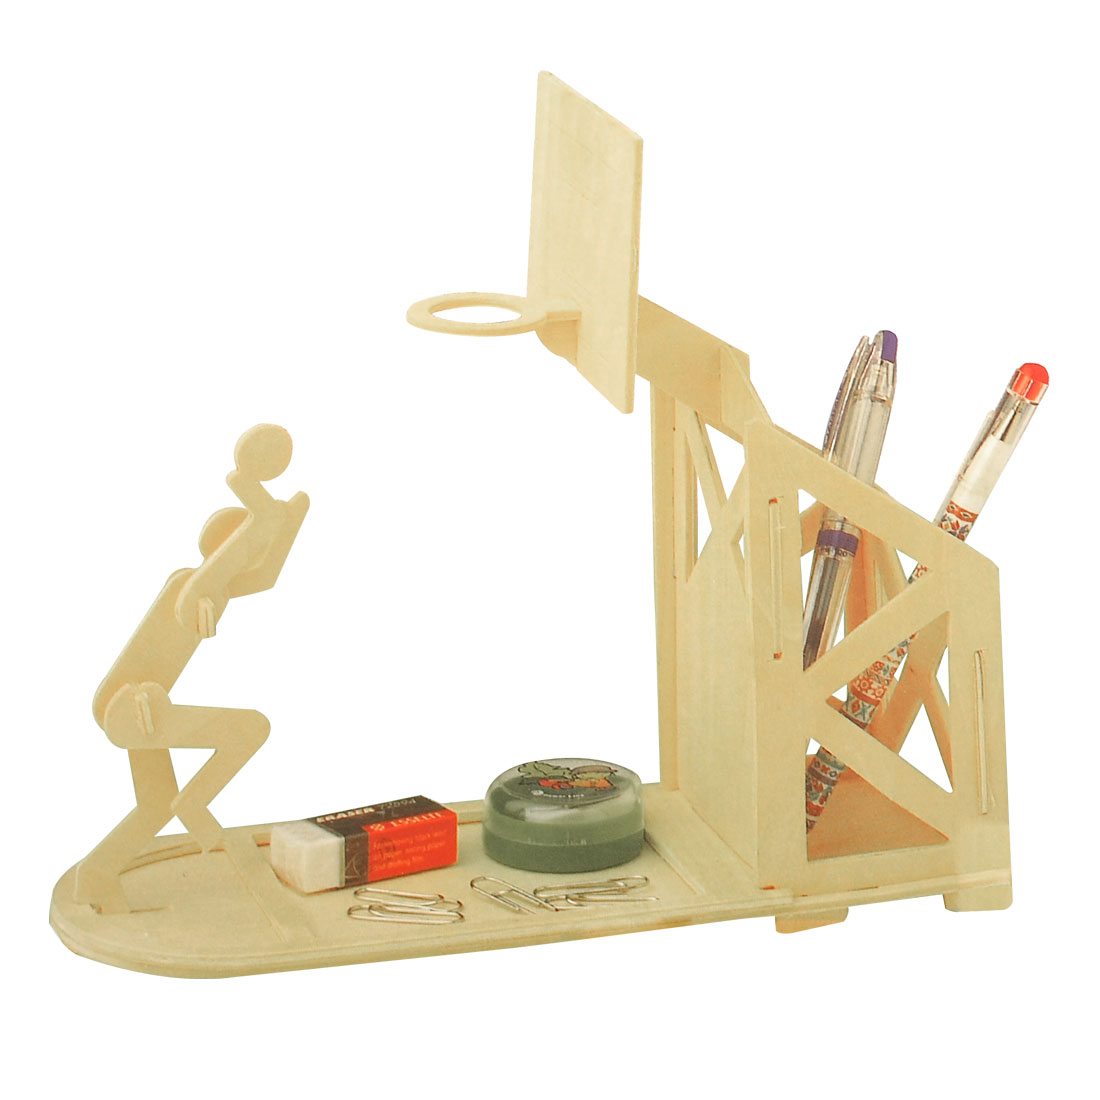 Wooden Basketball Pen Holder Woodcraft Construction Kit Assembling Puzzle Toy